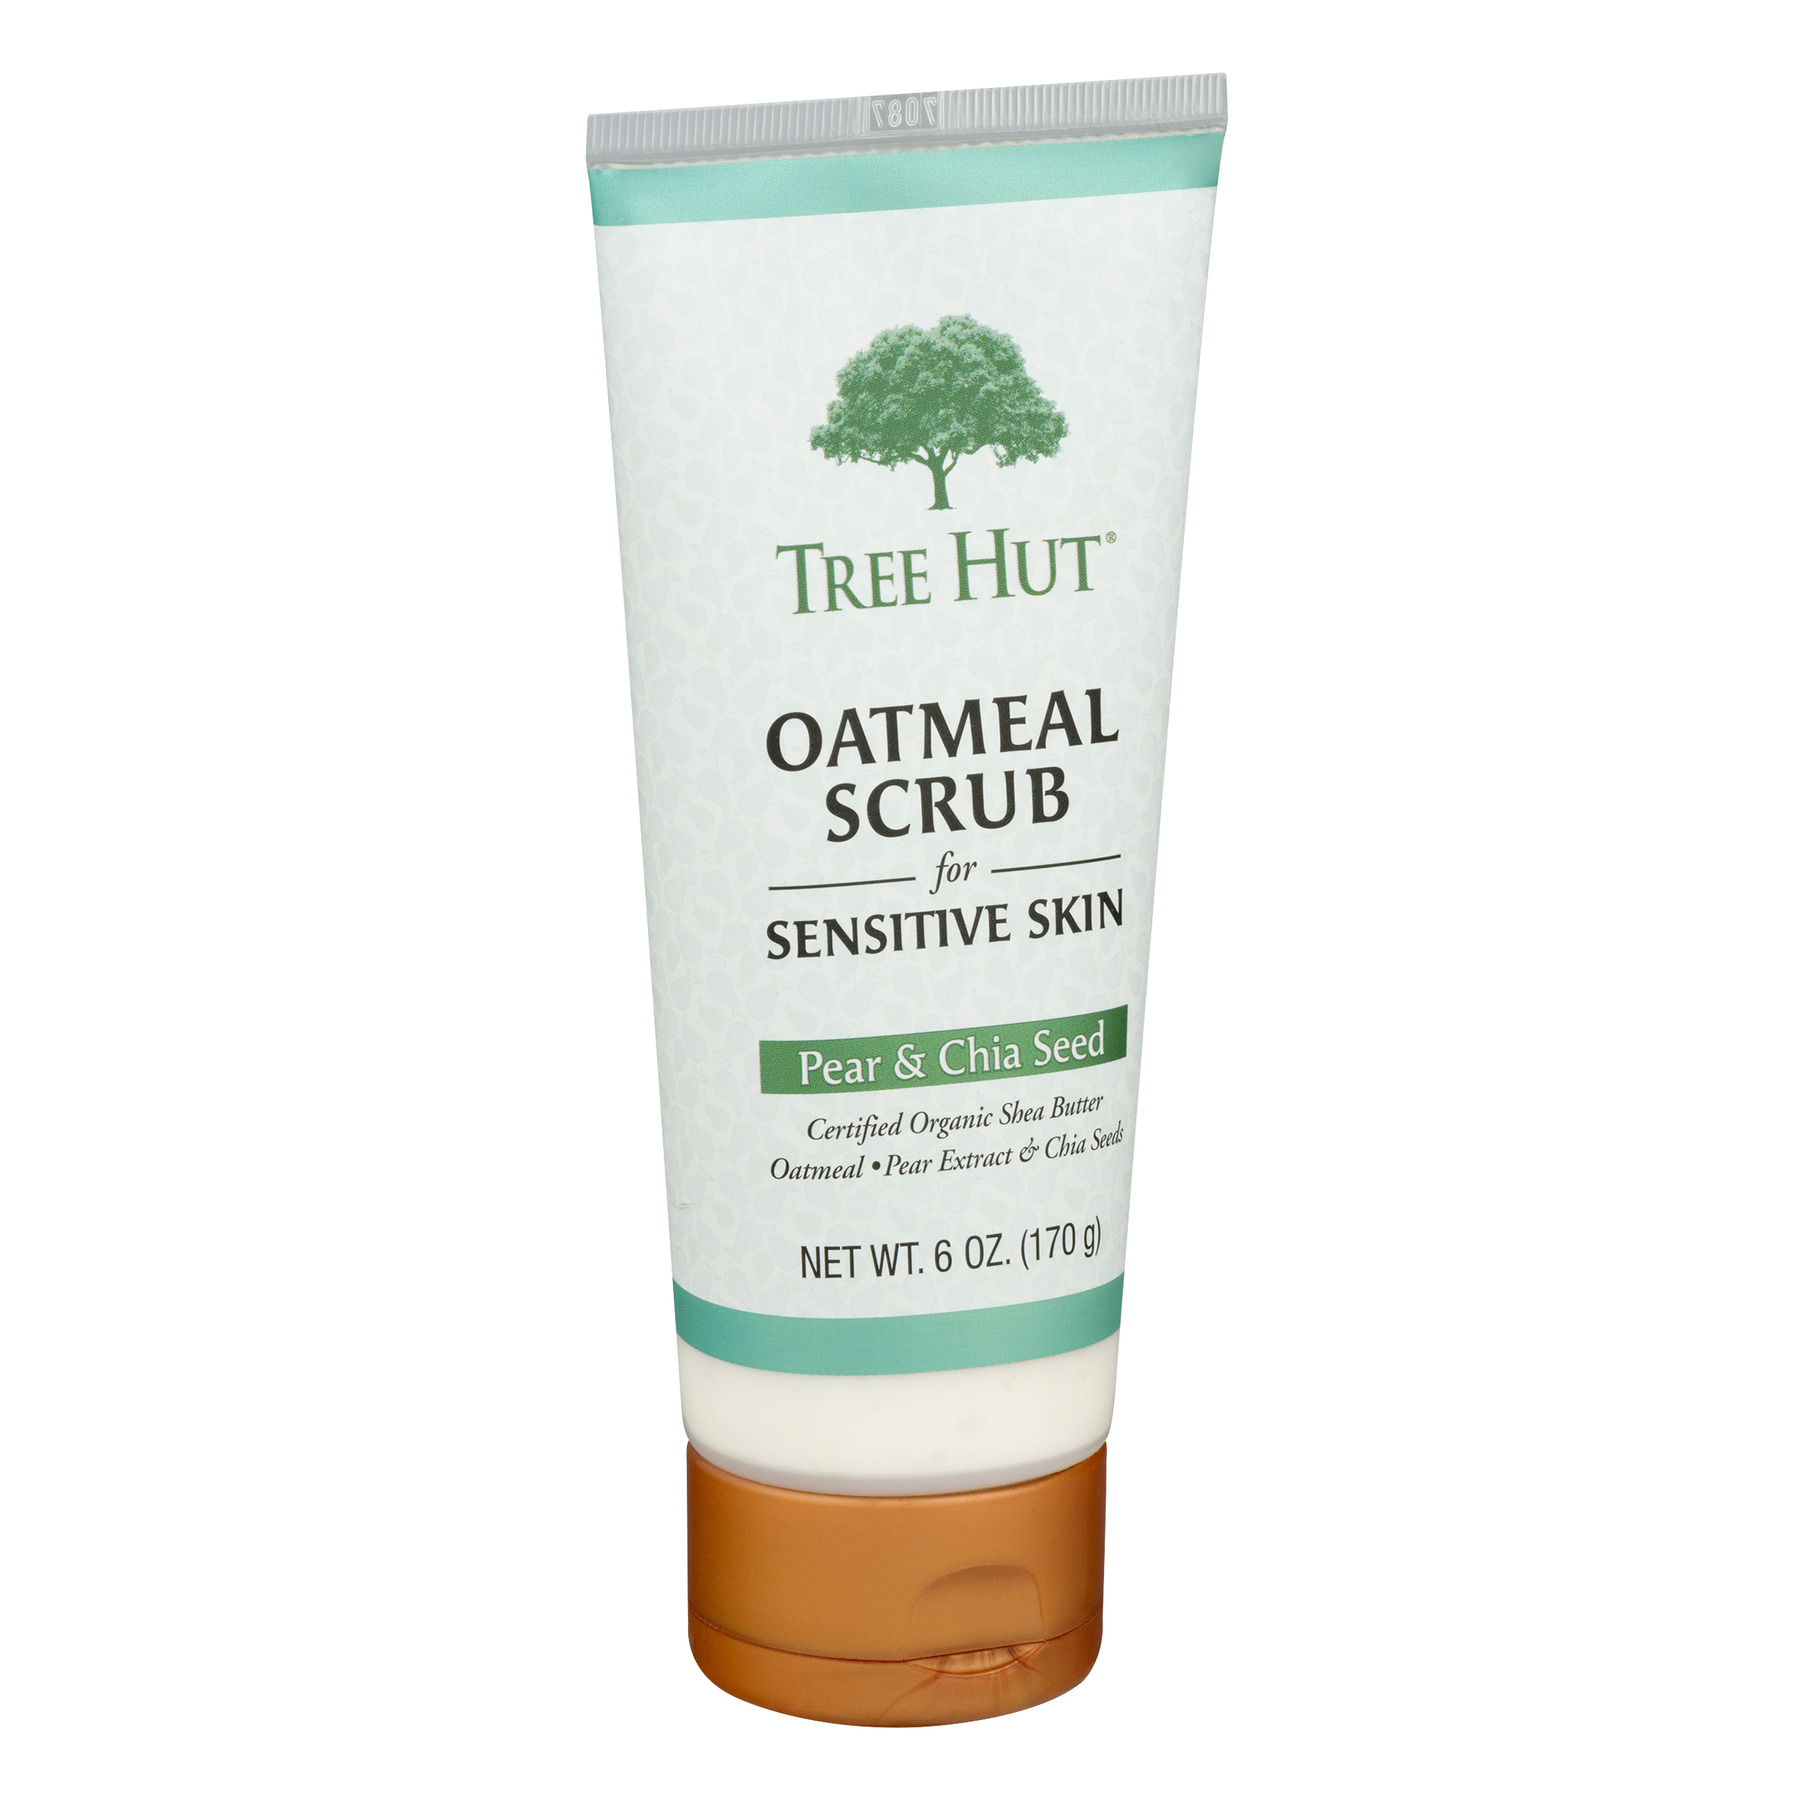 Tree Hut Oatmeal Scrub for Sensitive Skin, Pear & Chia Seed 6 oz (Pack of 6) Lancome - Absolue Precious Cells Nourishing Lip Balm - Honey-In-Rose - 15ml/0.5oz